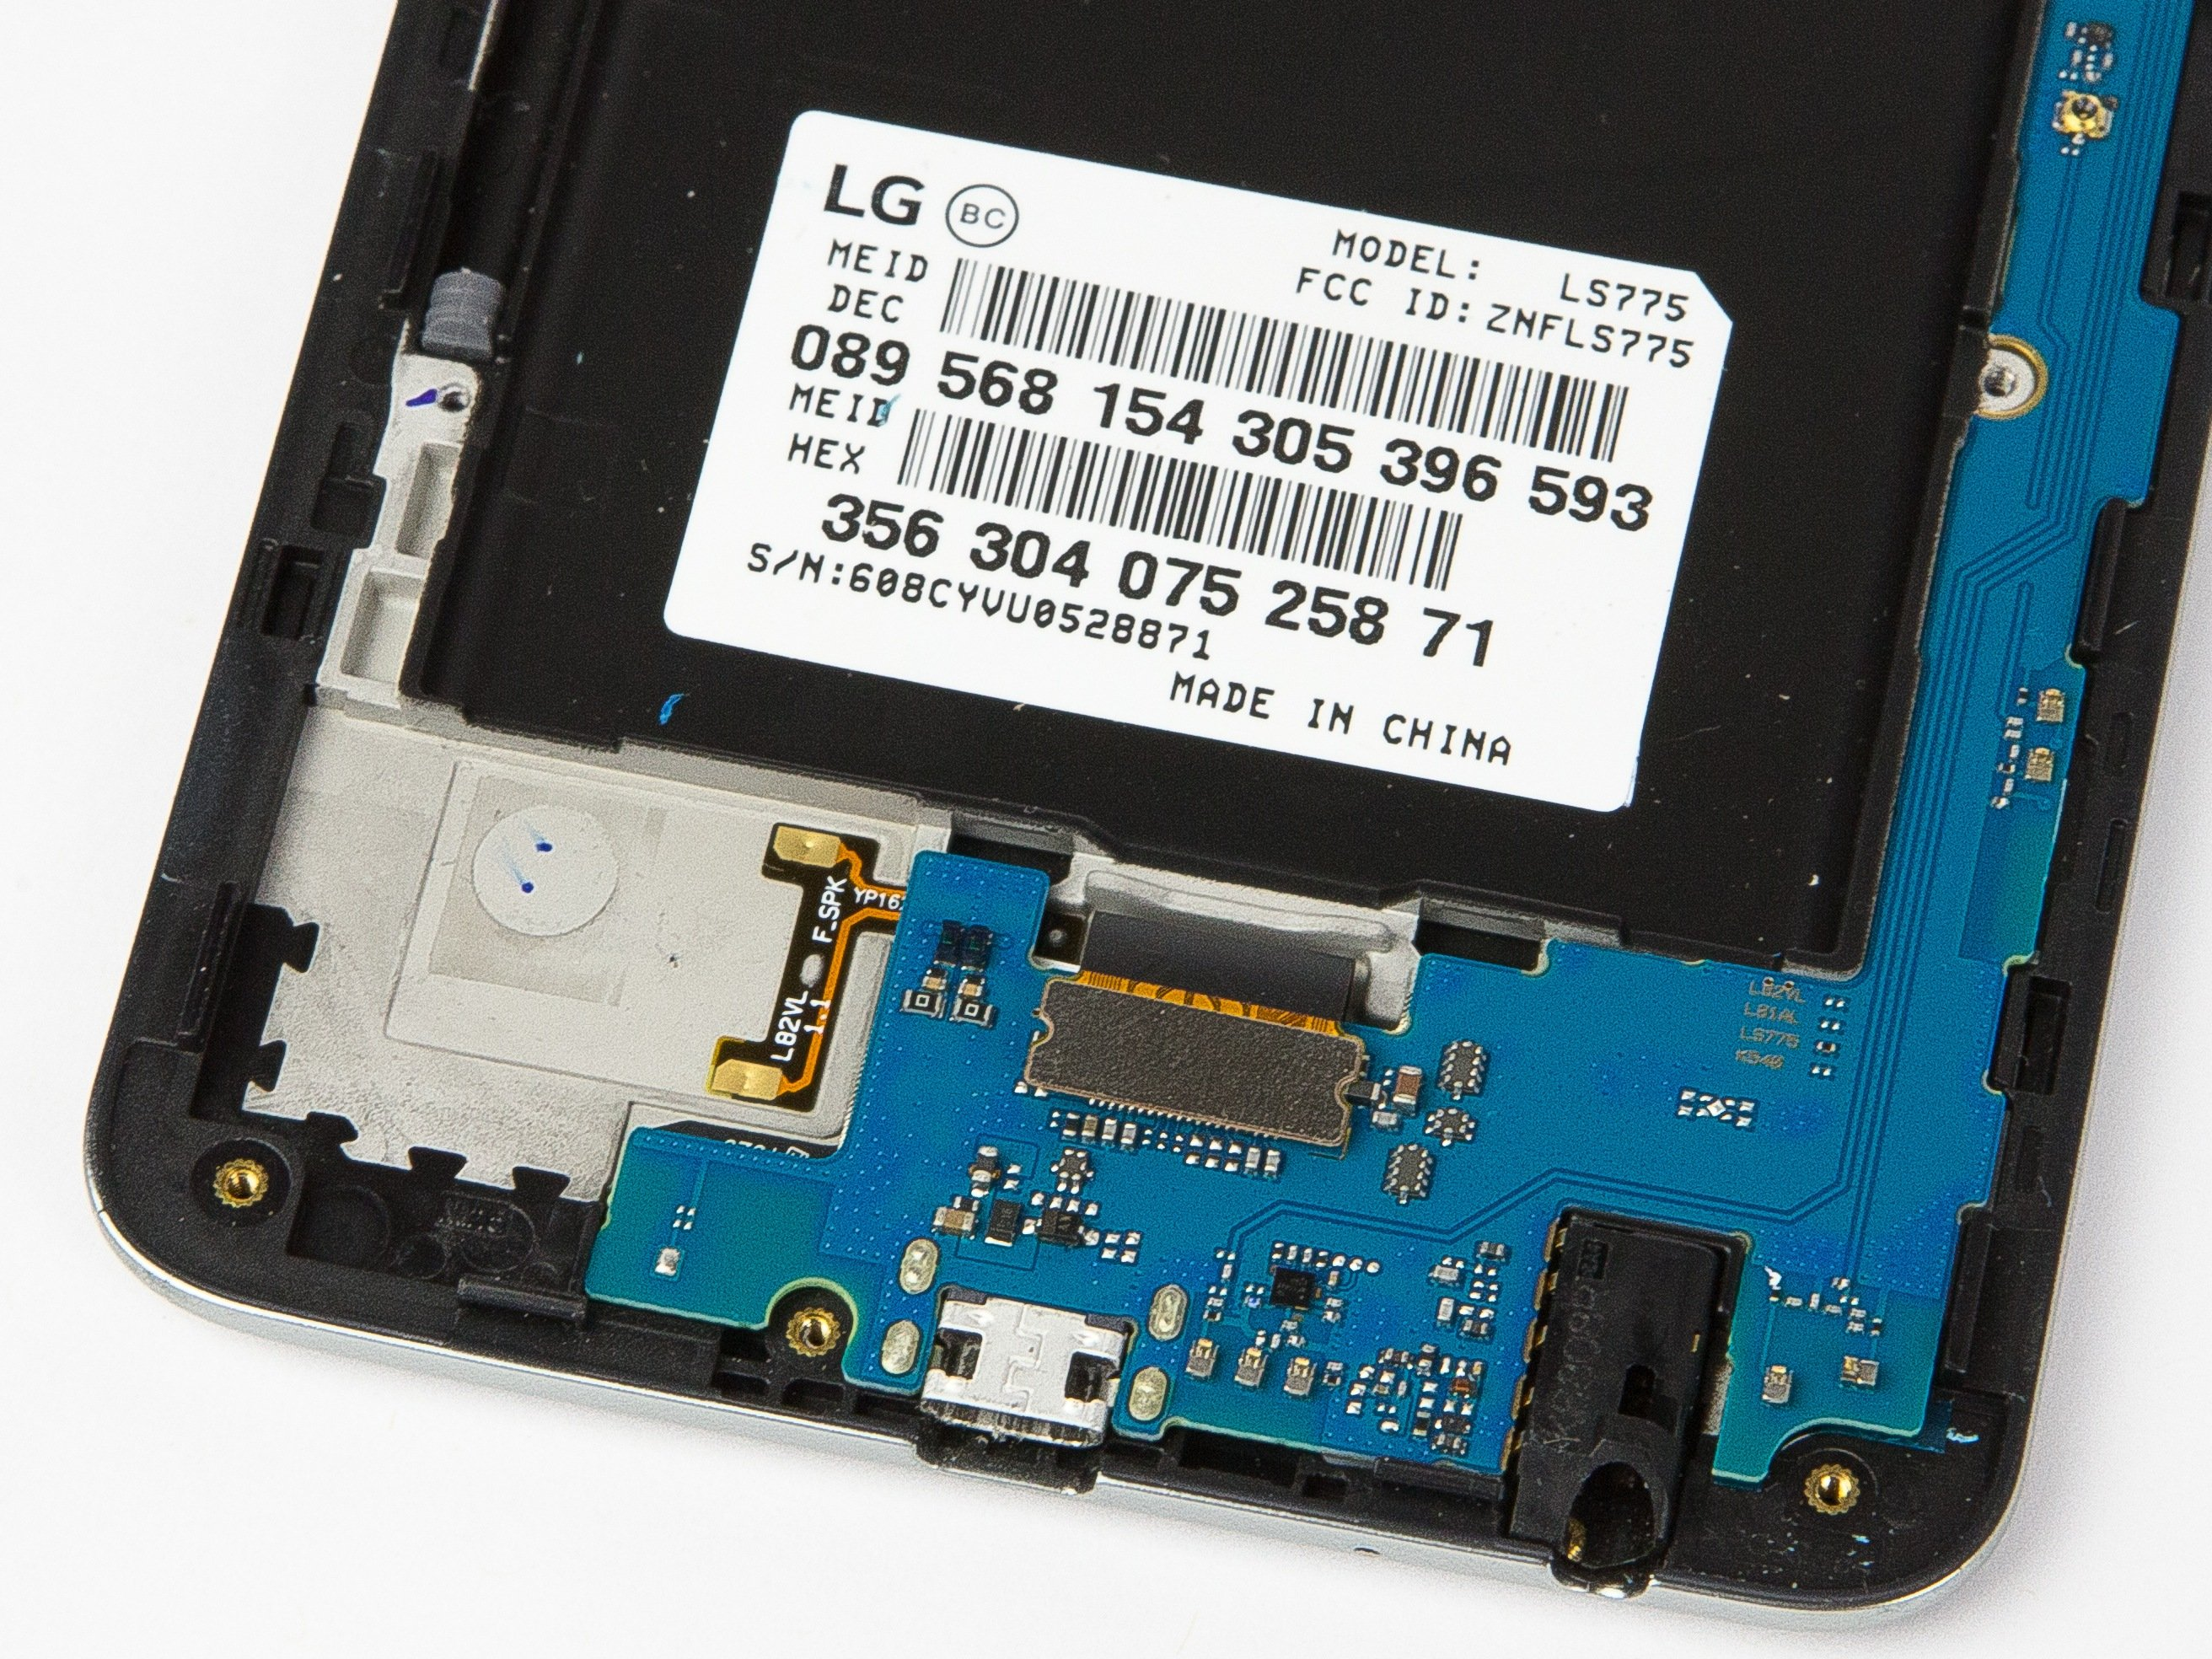 LG Stylo 2 Charger Port Replacement - iFixit Repair Guide